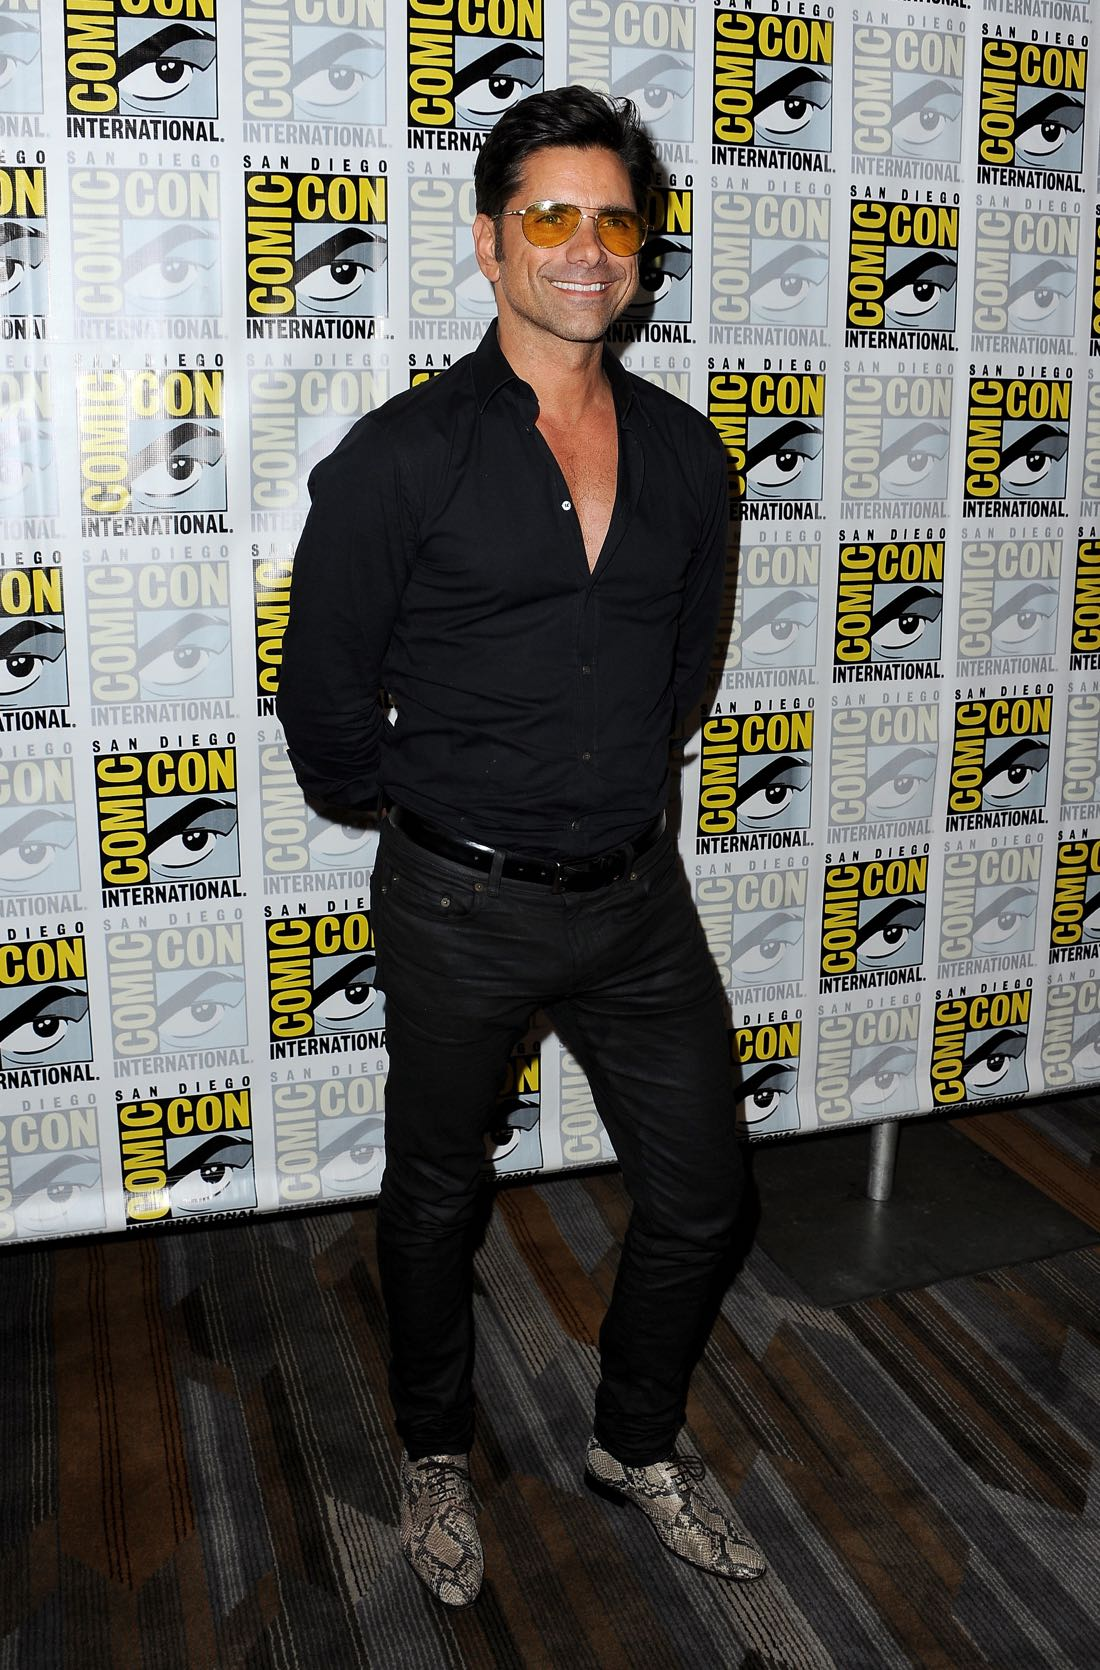 FOX FANFARE AT SAN DIEGO COMIC-CON © 2016: SCREAM QUEENS cast member John Stamos during the SCREAM QUEENS press room on Friday, July 22 at the FOX FANFARE AT SAN DIEGO COMIC-CON © 2016. CR: Scott Krikland/FX © 2016 FOX BROADCASTING